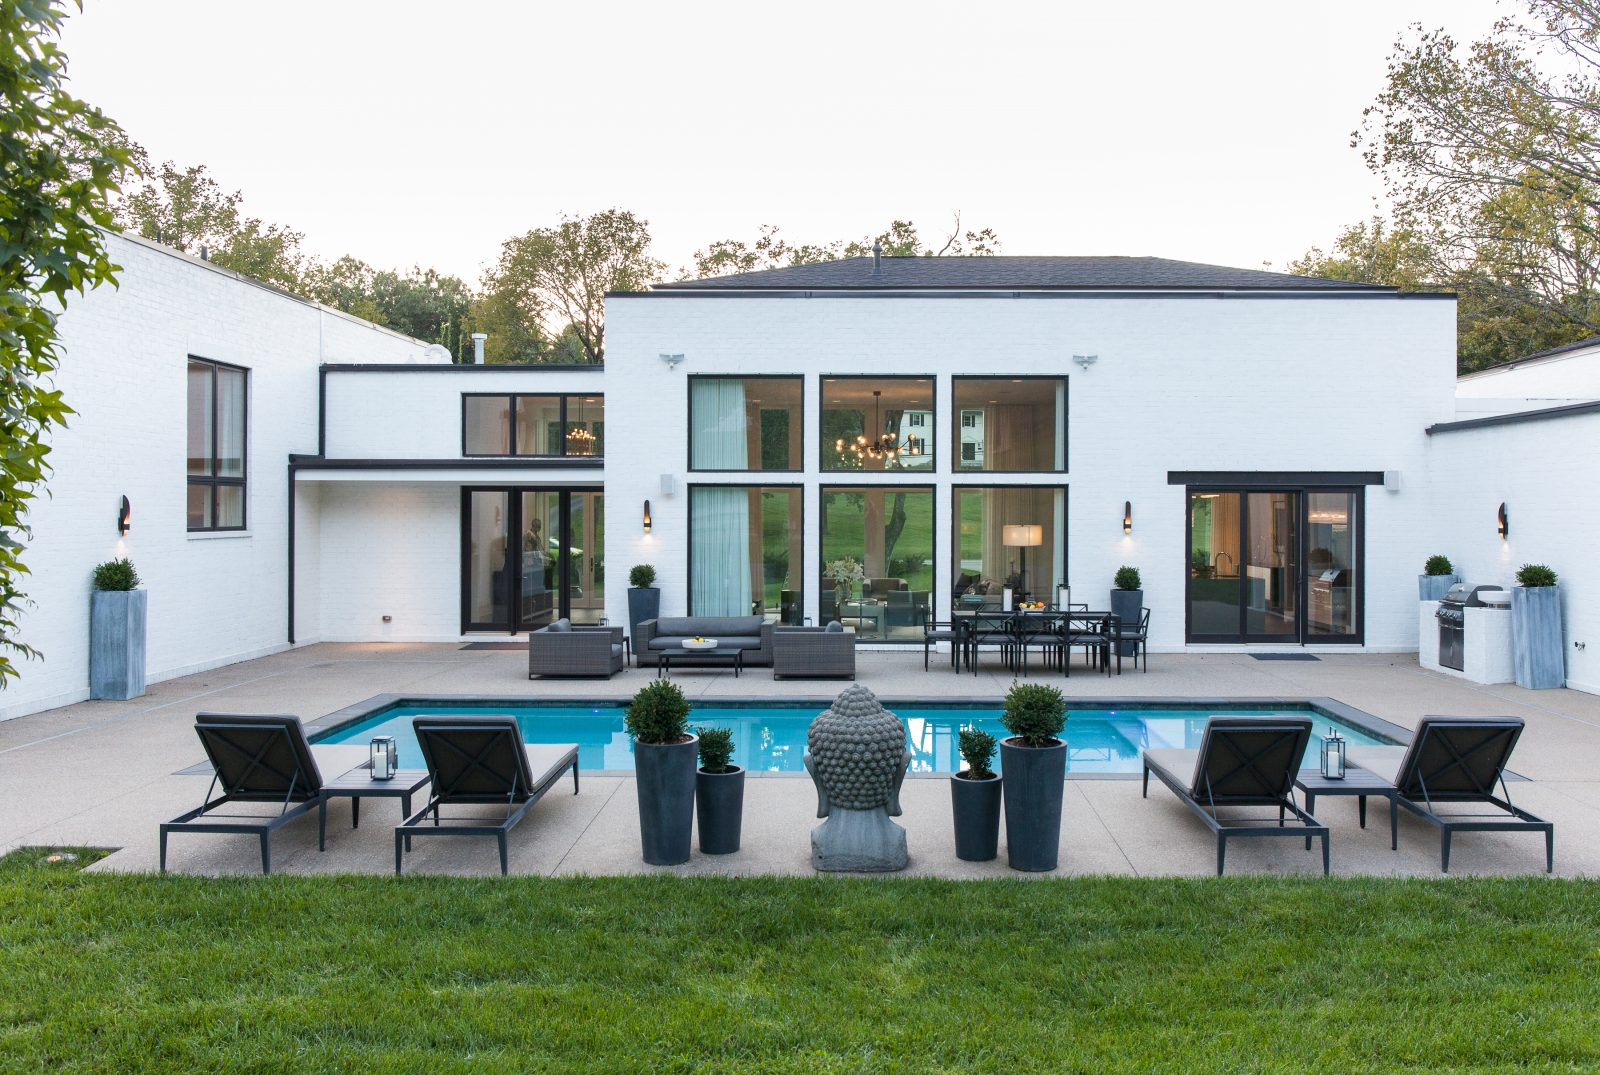 Pool outside of a luxury home with tall windows